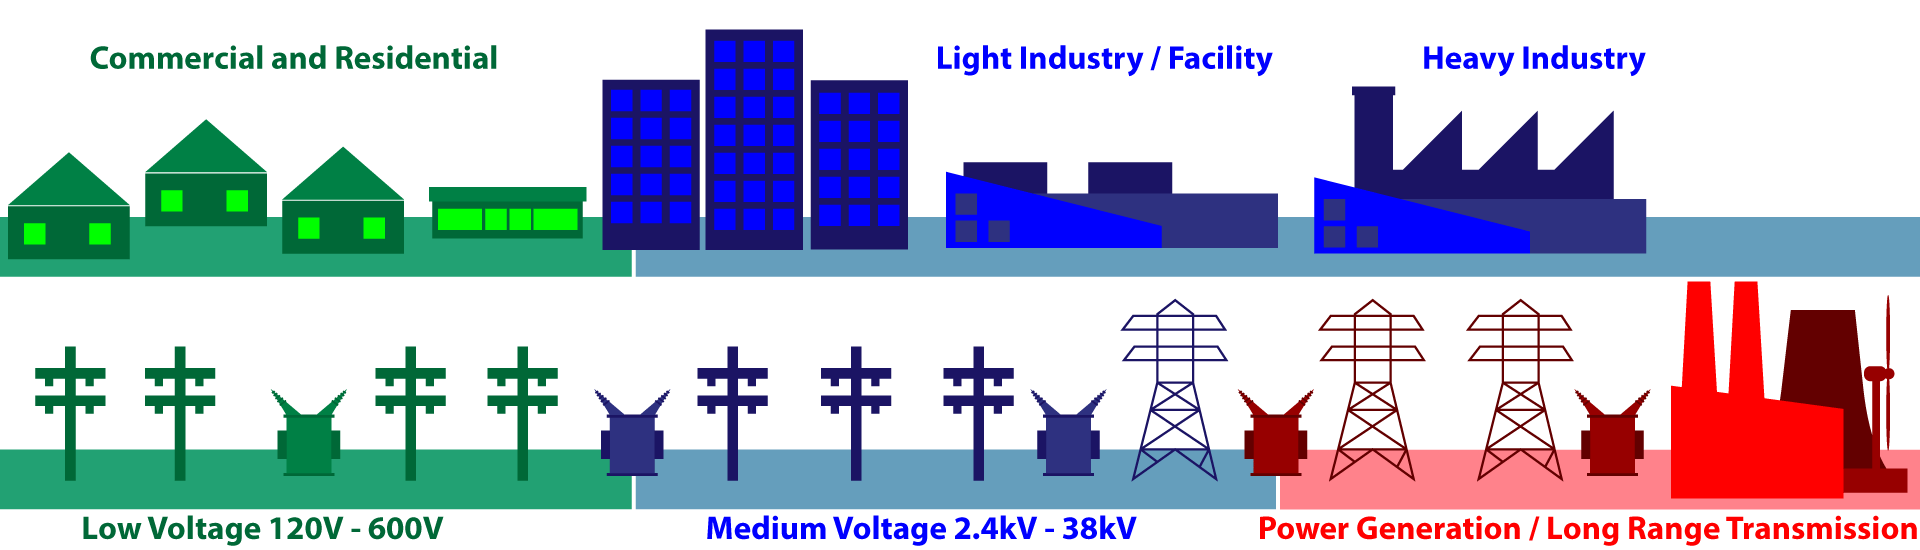 Low and Medium Voltage Solutions Up to 38kV